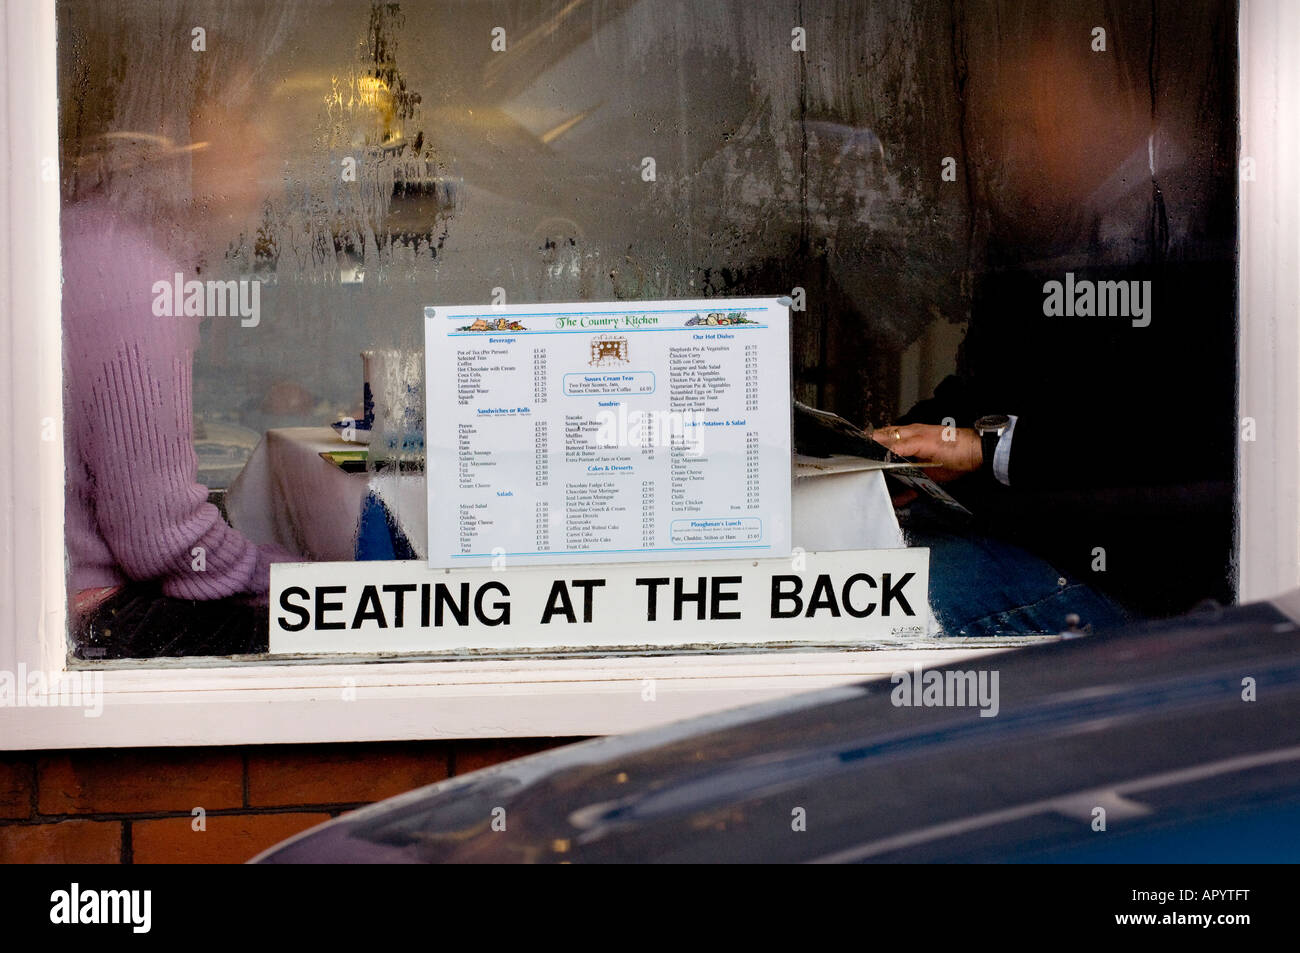 Condensation obscures the view of a couple sat at a table in the window of a cafe. Picture by Jim Holden. - Stock Image